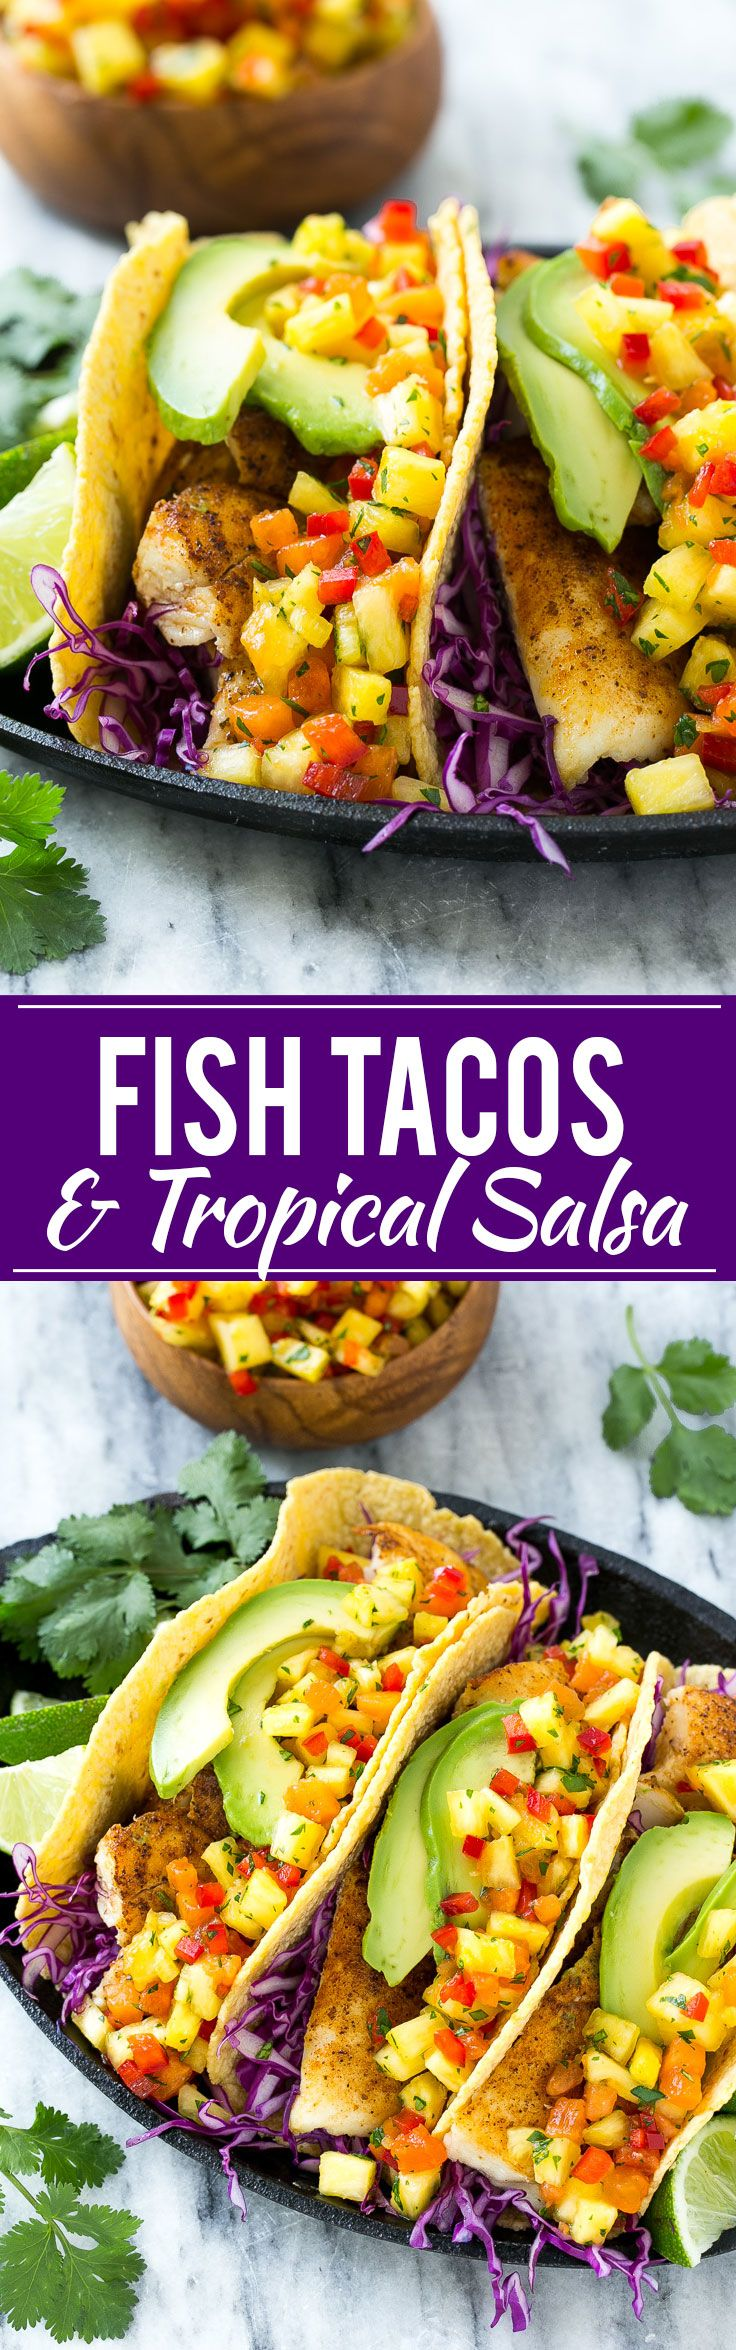 This Recipe For Tilapia Fish Tacos Is Seasoned Fish Layered With Cabbage Avocado And A